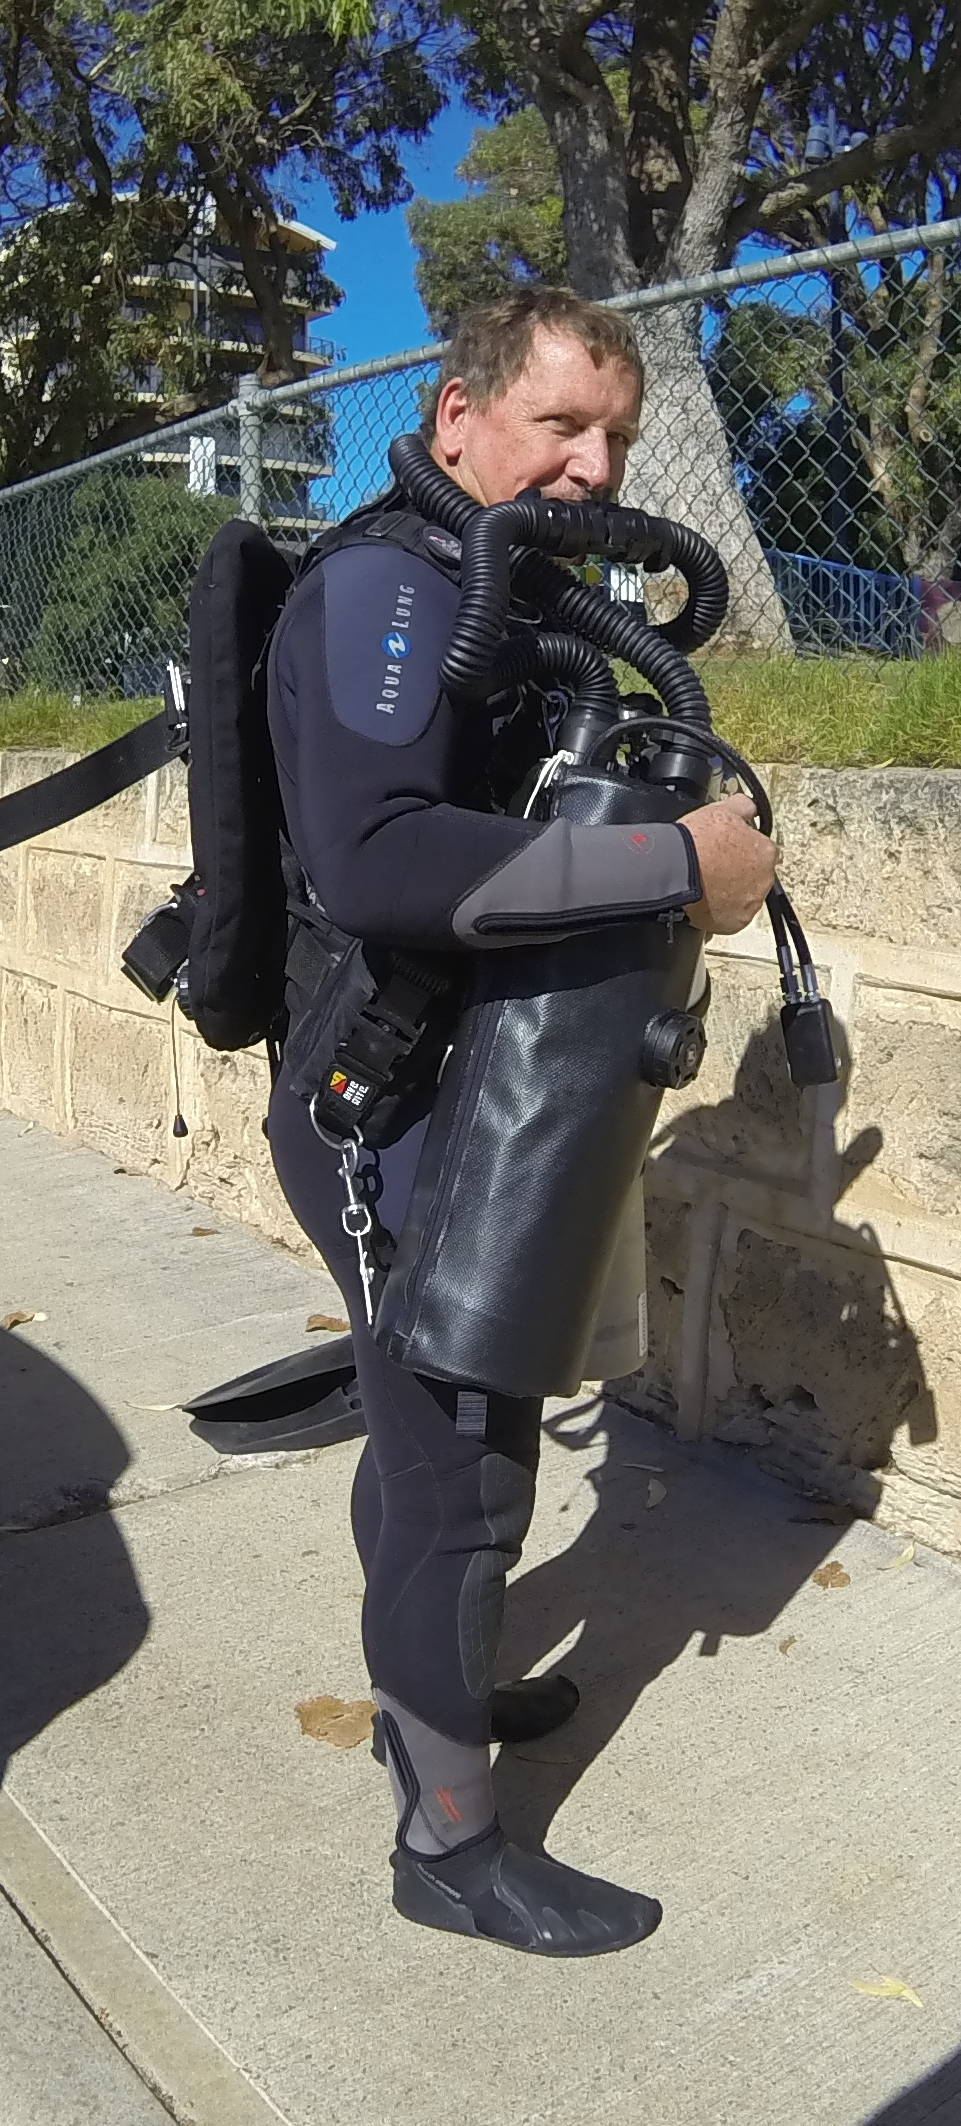 Dive-Systems-Proteus-P2-Sidemount-Rebreather-0670a.jpg